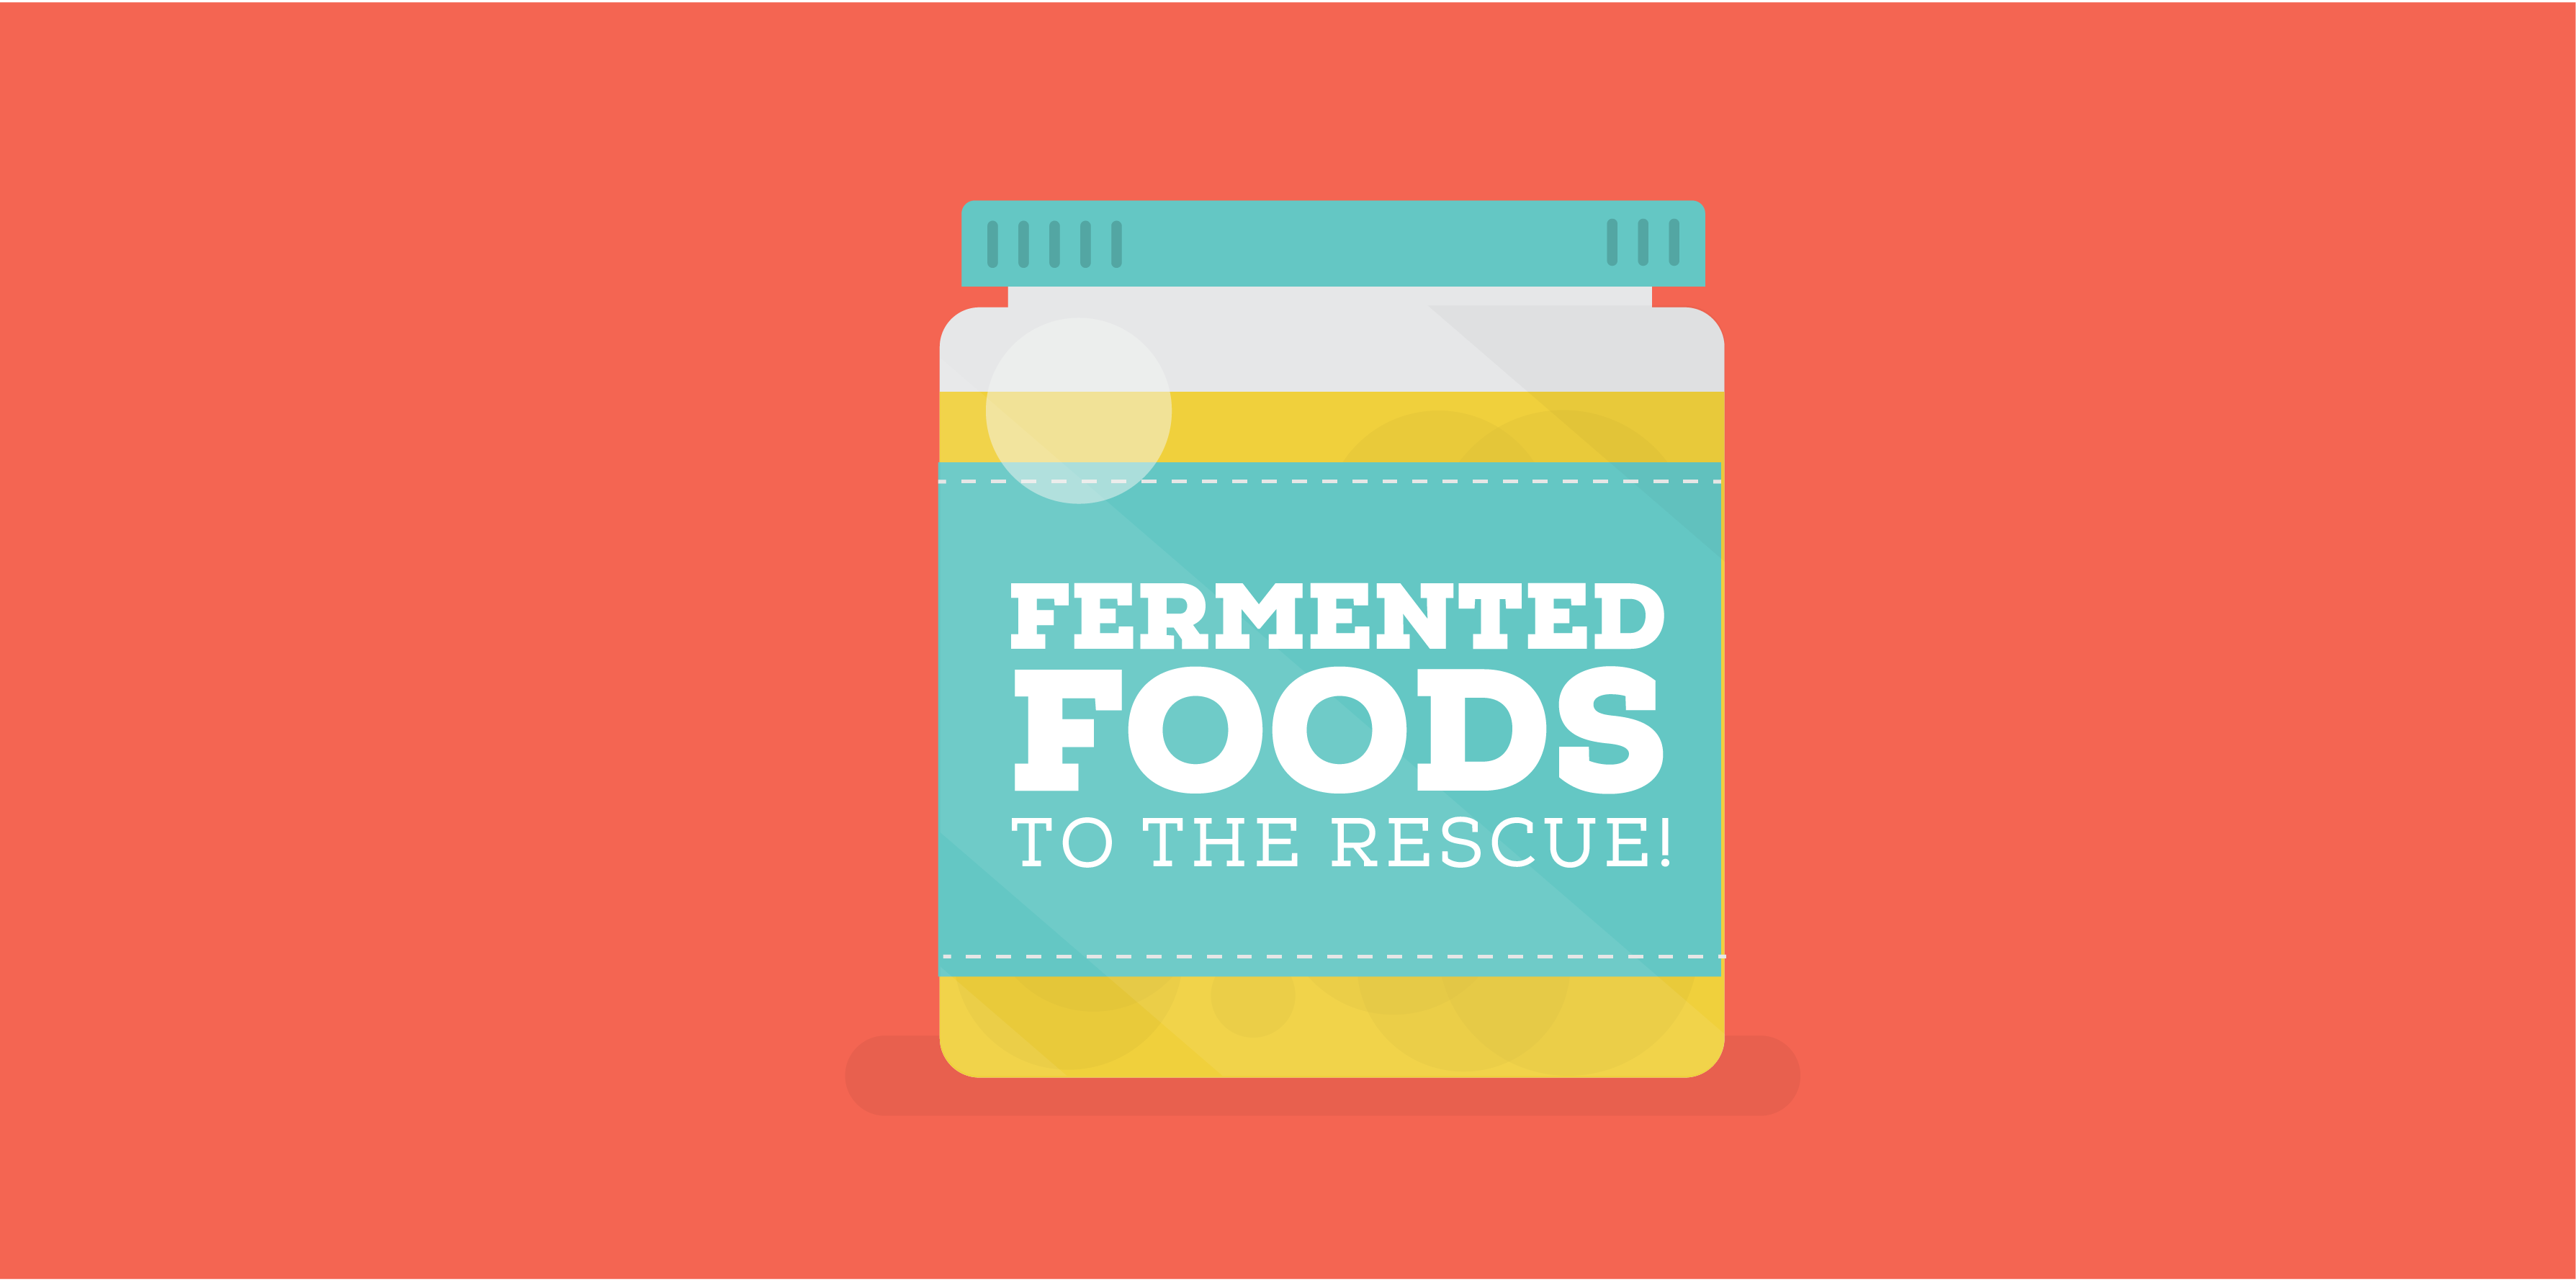 Fermented Foods to the rescue!